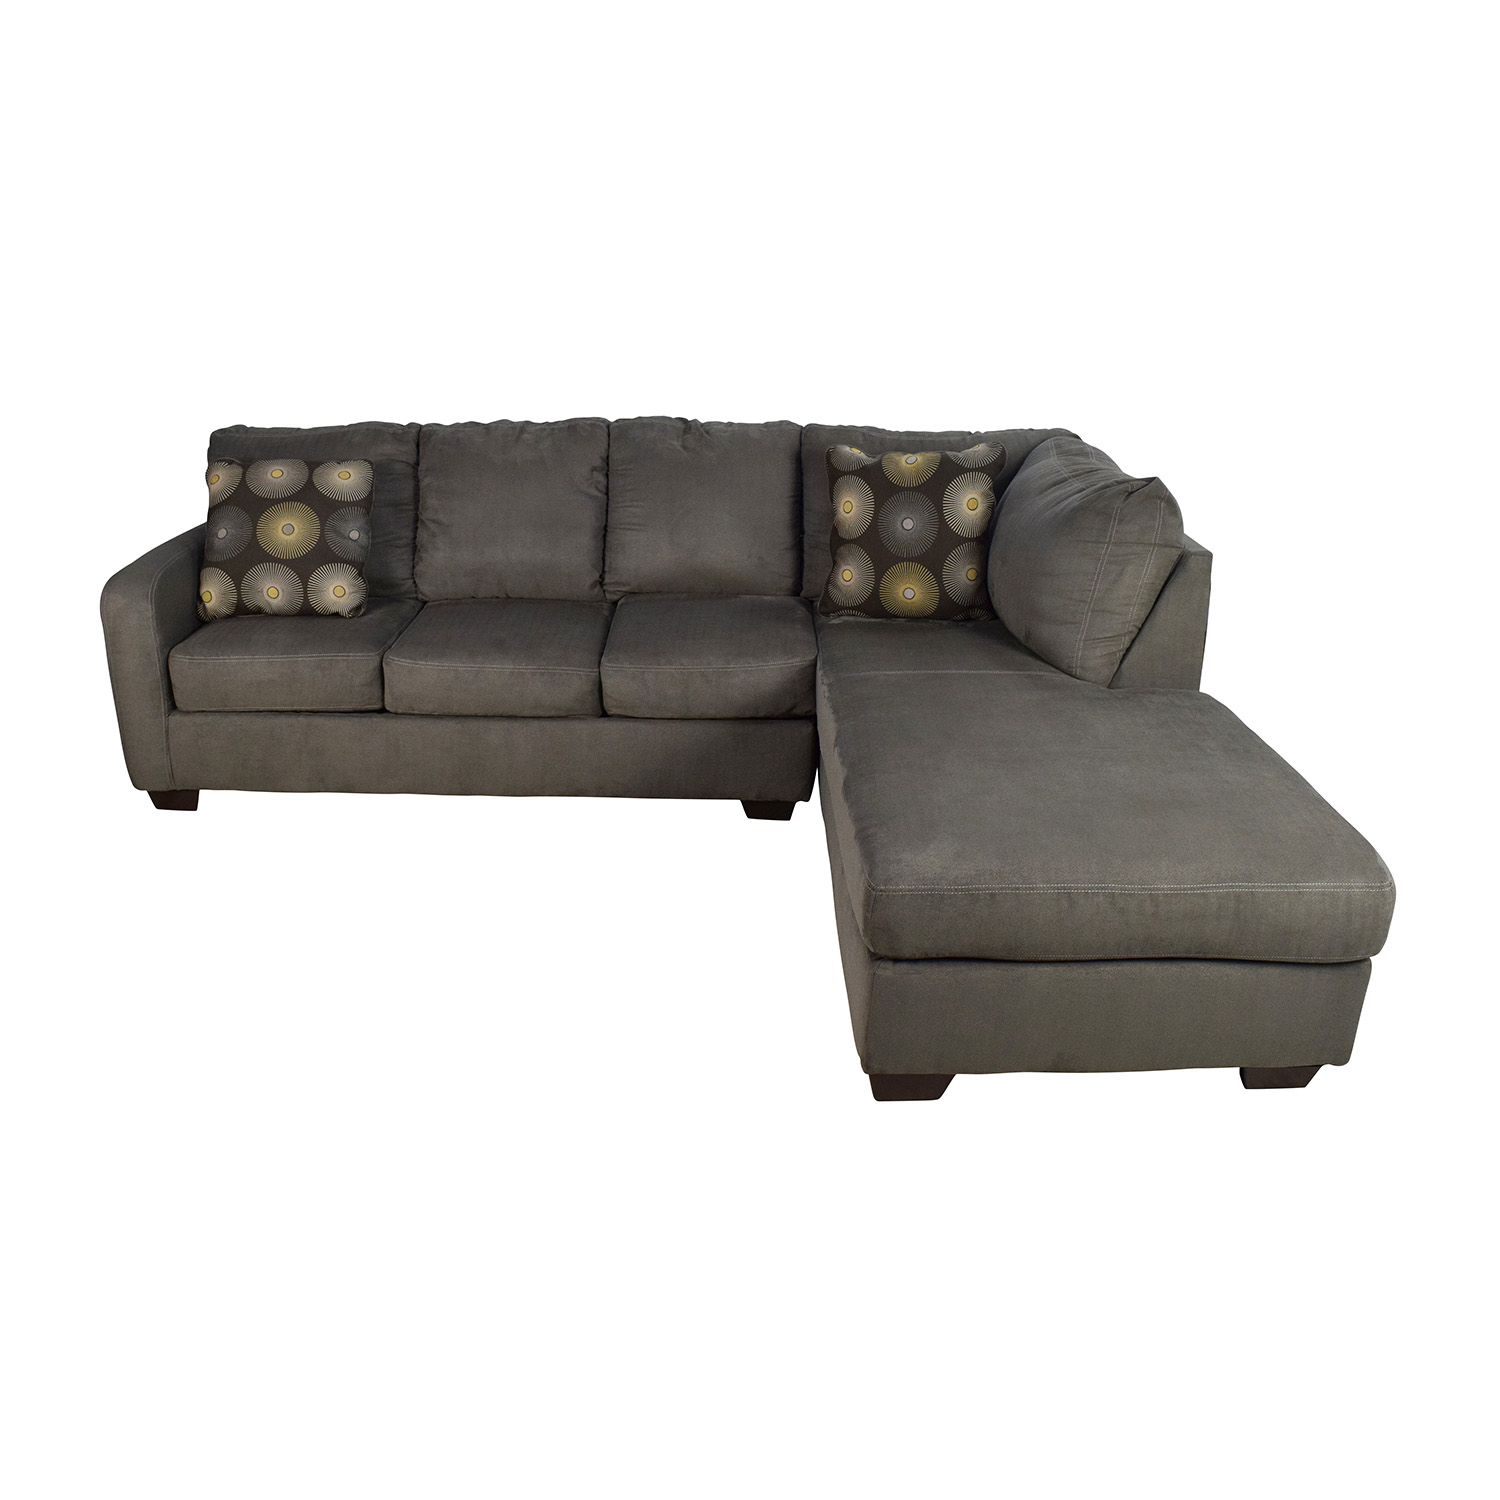 Ashley Furniture Ashley Furniture Waverly Gray Sectional Sofa price